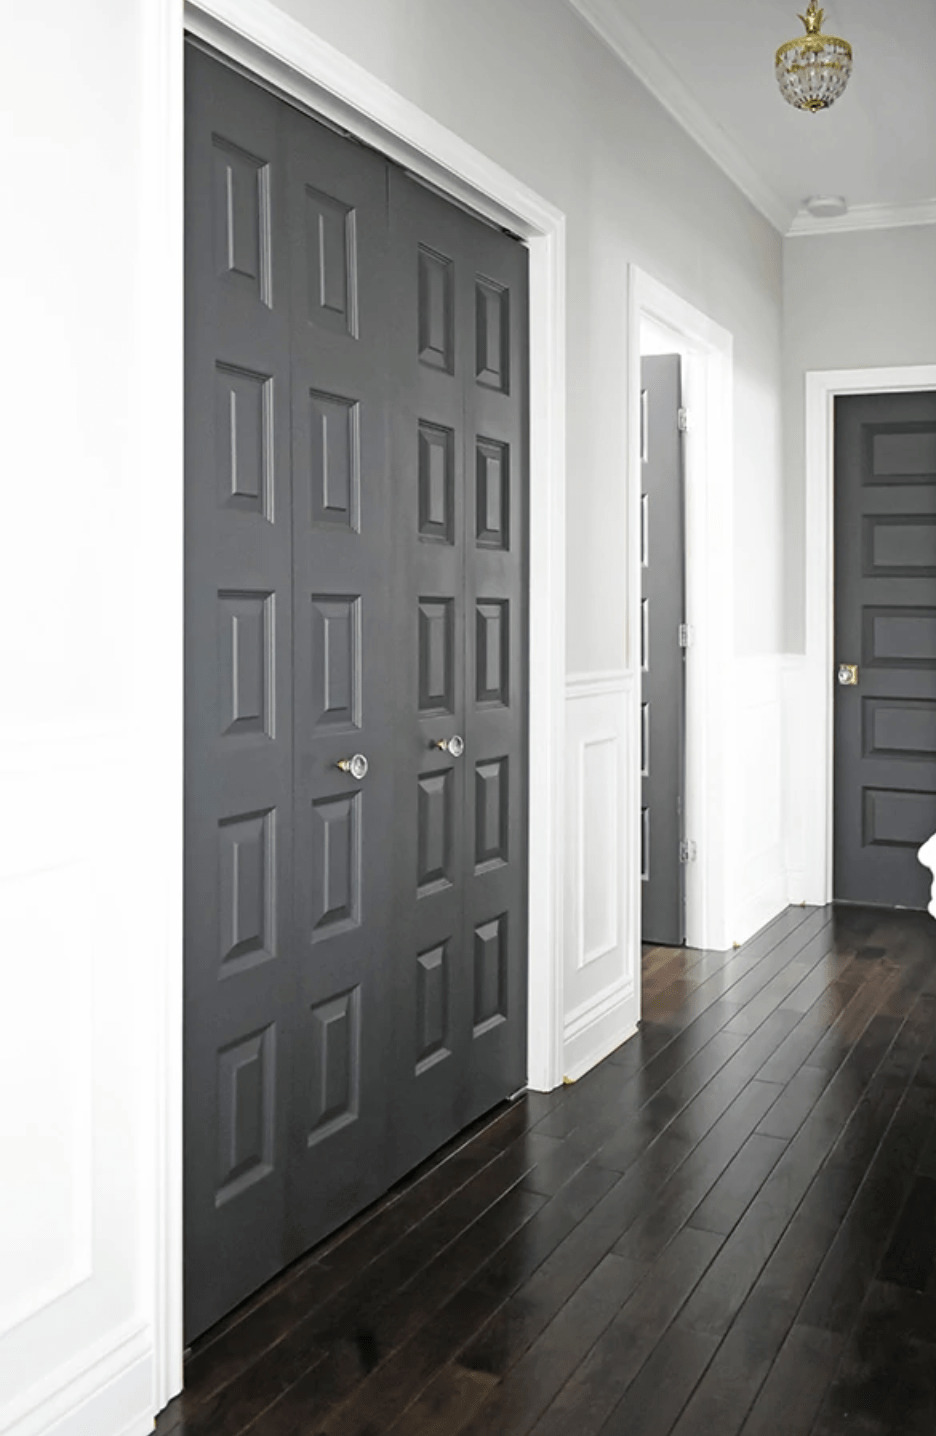 Dark painted doors in a bright hallway